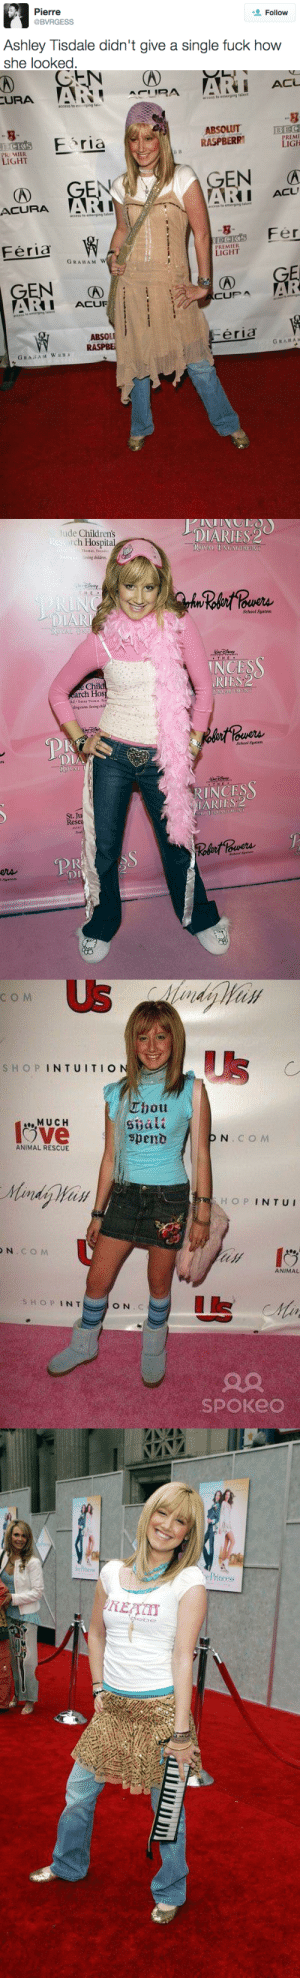 School, Target, and Tumblr: Pierre  BVRGESS  Follow  Ashley Tisdale didn't give a single fuck how  she looked   access to emerging talent  8  ABSOLUT BEC  8-  E ria  RASPBERR  PR MIER  LIGHT  IGH  EN A  :41 ACU  ACURA A  access to emerging talent  access te emerging talent  Eds Fer  FériaW  REMIER  IGHT  GRAHAM W  RI ACUF  CUP  ABSOL  WRASPBE  eria  GRARAM WESS   lude Childrens  rch Hospita  ring childres  DIARIES2  uerA  School Systerm  INCESS  RIES:2  Chil  arch Hos  School Sustem  RINCES  ARIES 2  Resea  wots  l Syste   сом  SHOP INTUITIO  Cl) ou  Sbält  M UCH  ANIMAL RESCUE  Handy Han  Н О P INTUI  N CO M  ANIMAL  tis  S HOPINT  O N.C  SpOKeo   e Princess  be bussykween:  actually these are from Versace S/S 2007